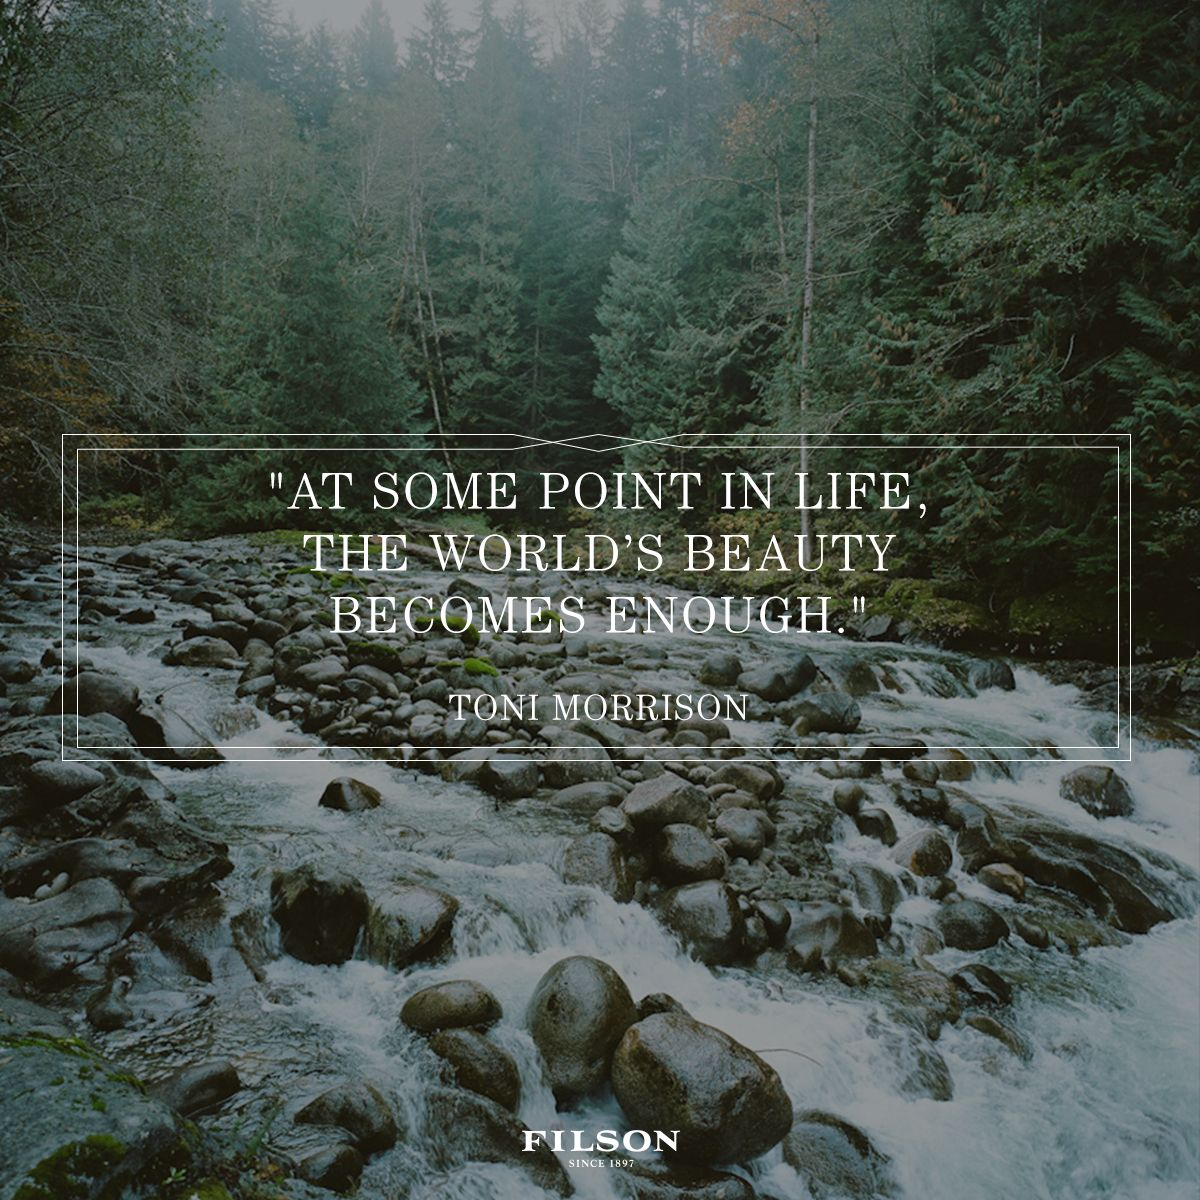 At Some Point In Life The World S Beauty Becomes Enough Toni Morrison Nature Quotes Adventure Nature Quotes Adventure Quotes